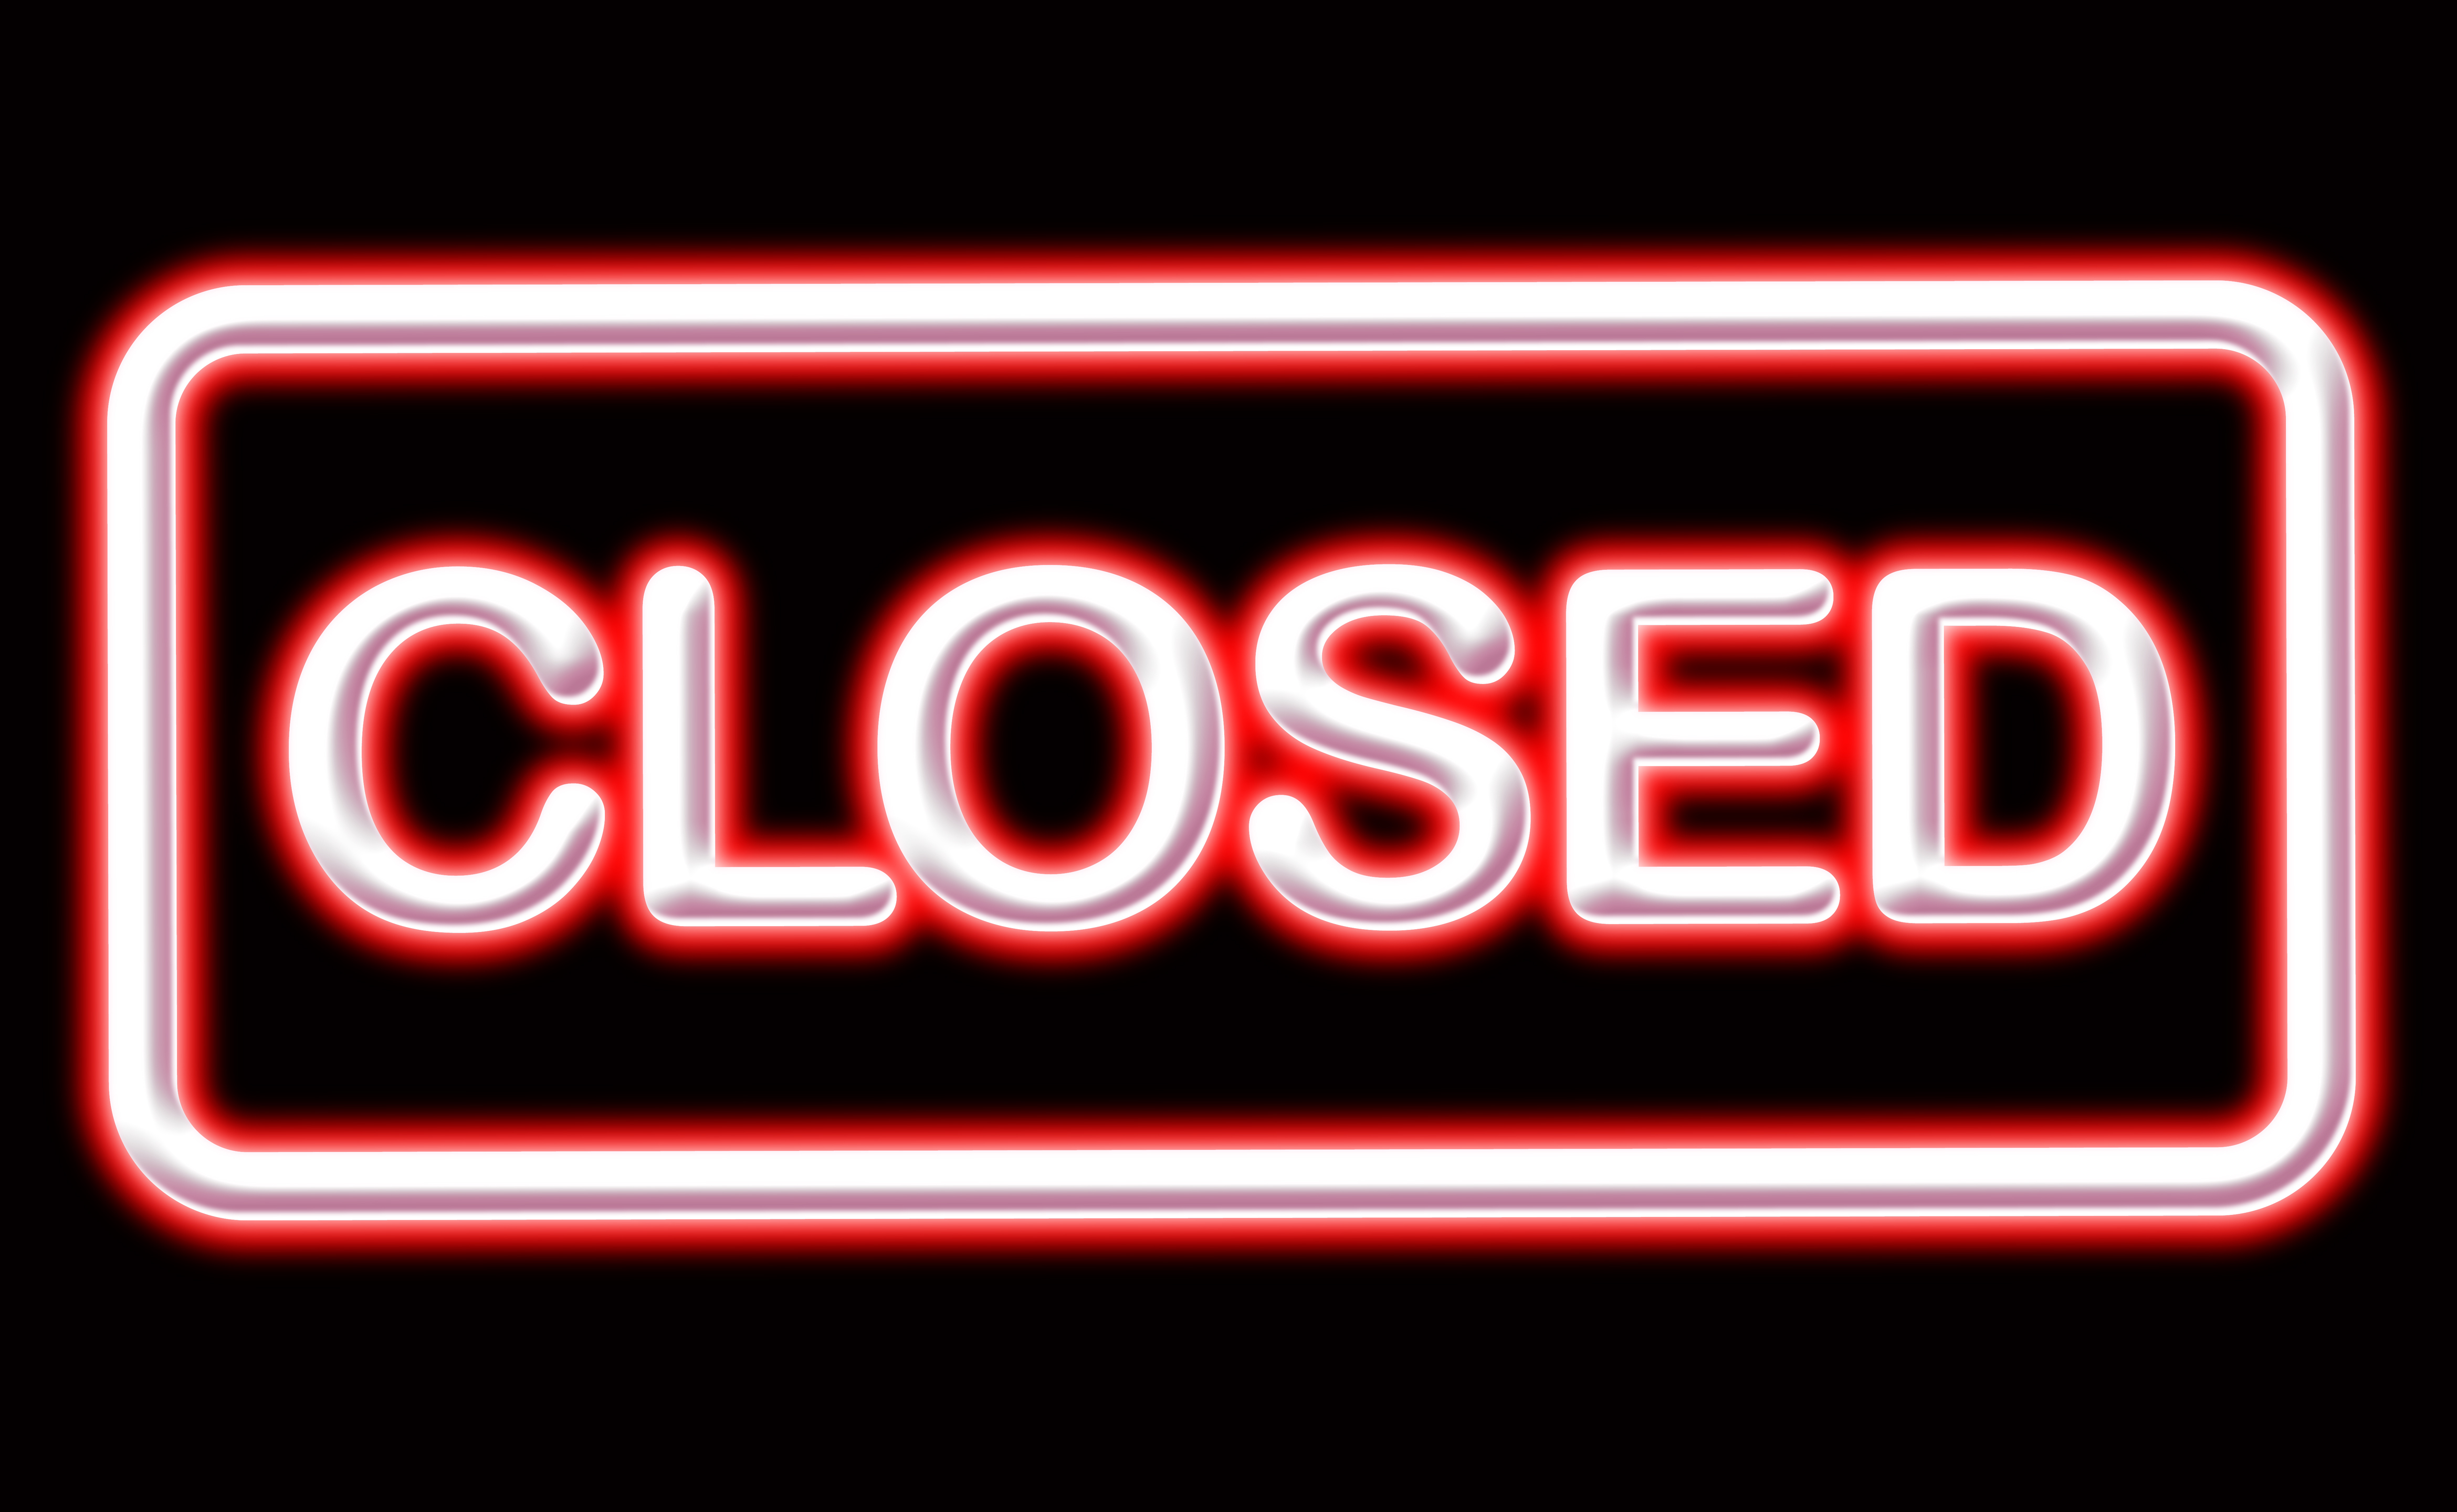 CLOSED sign text word (10)